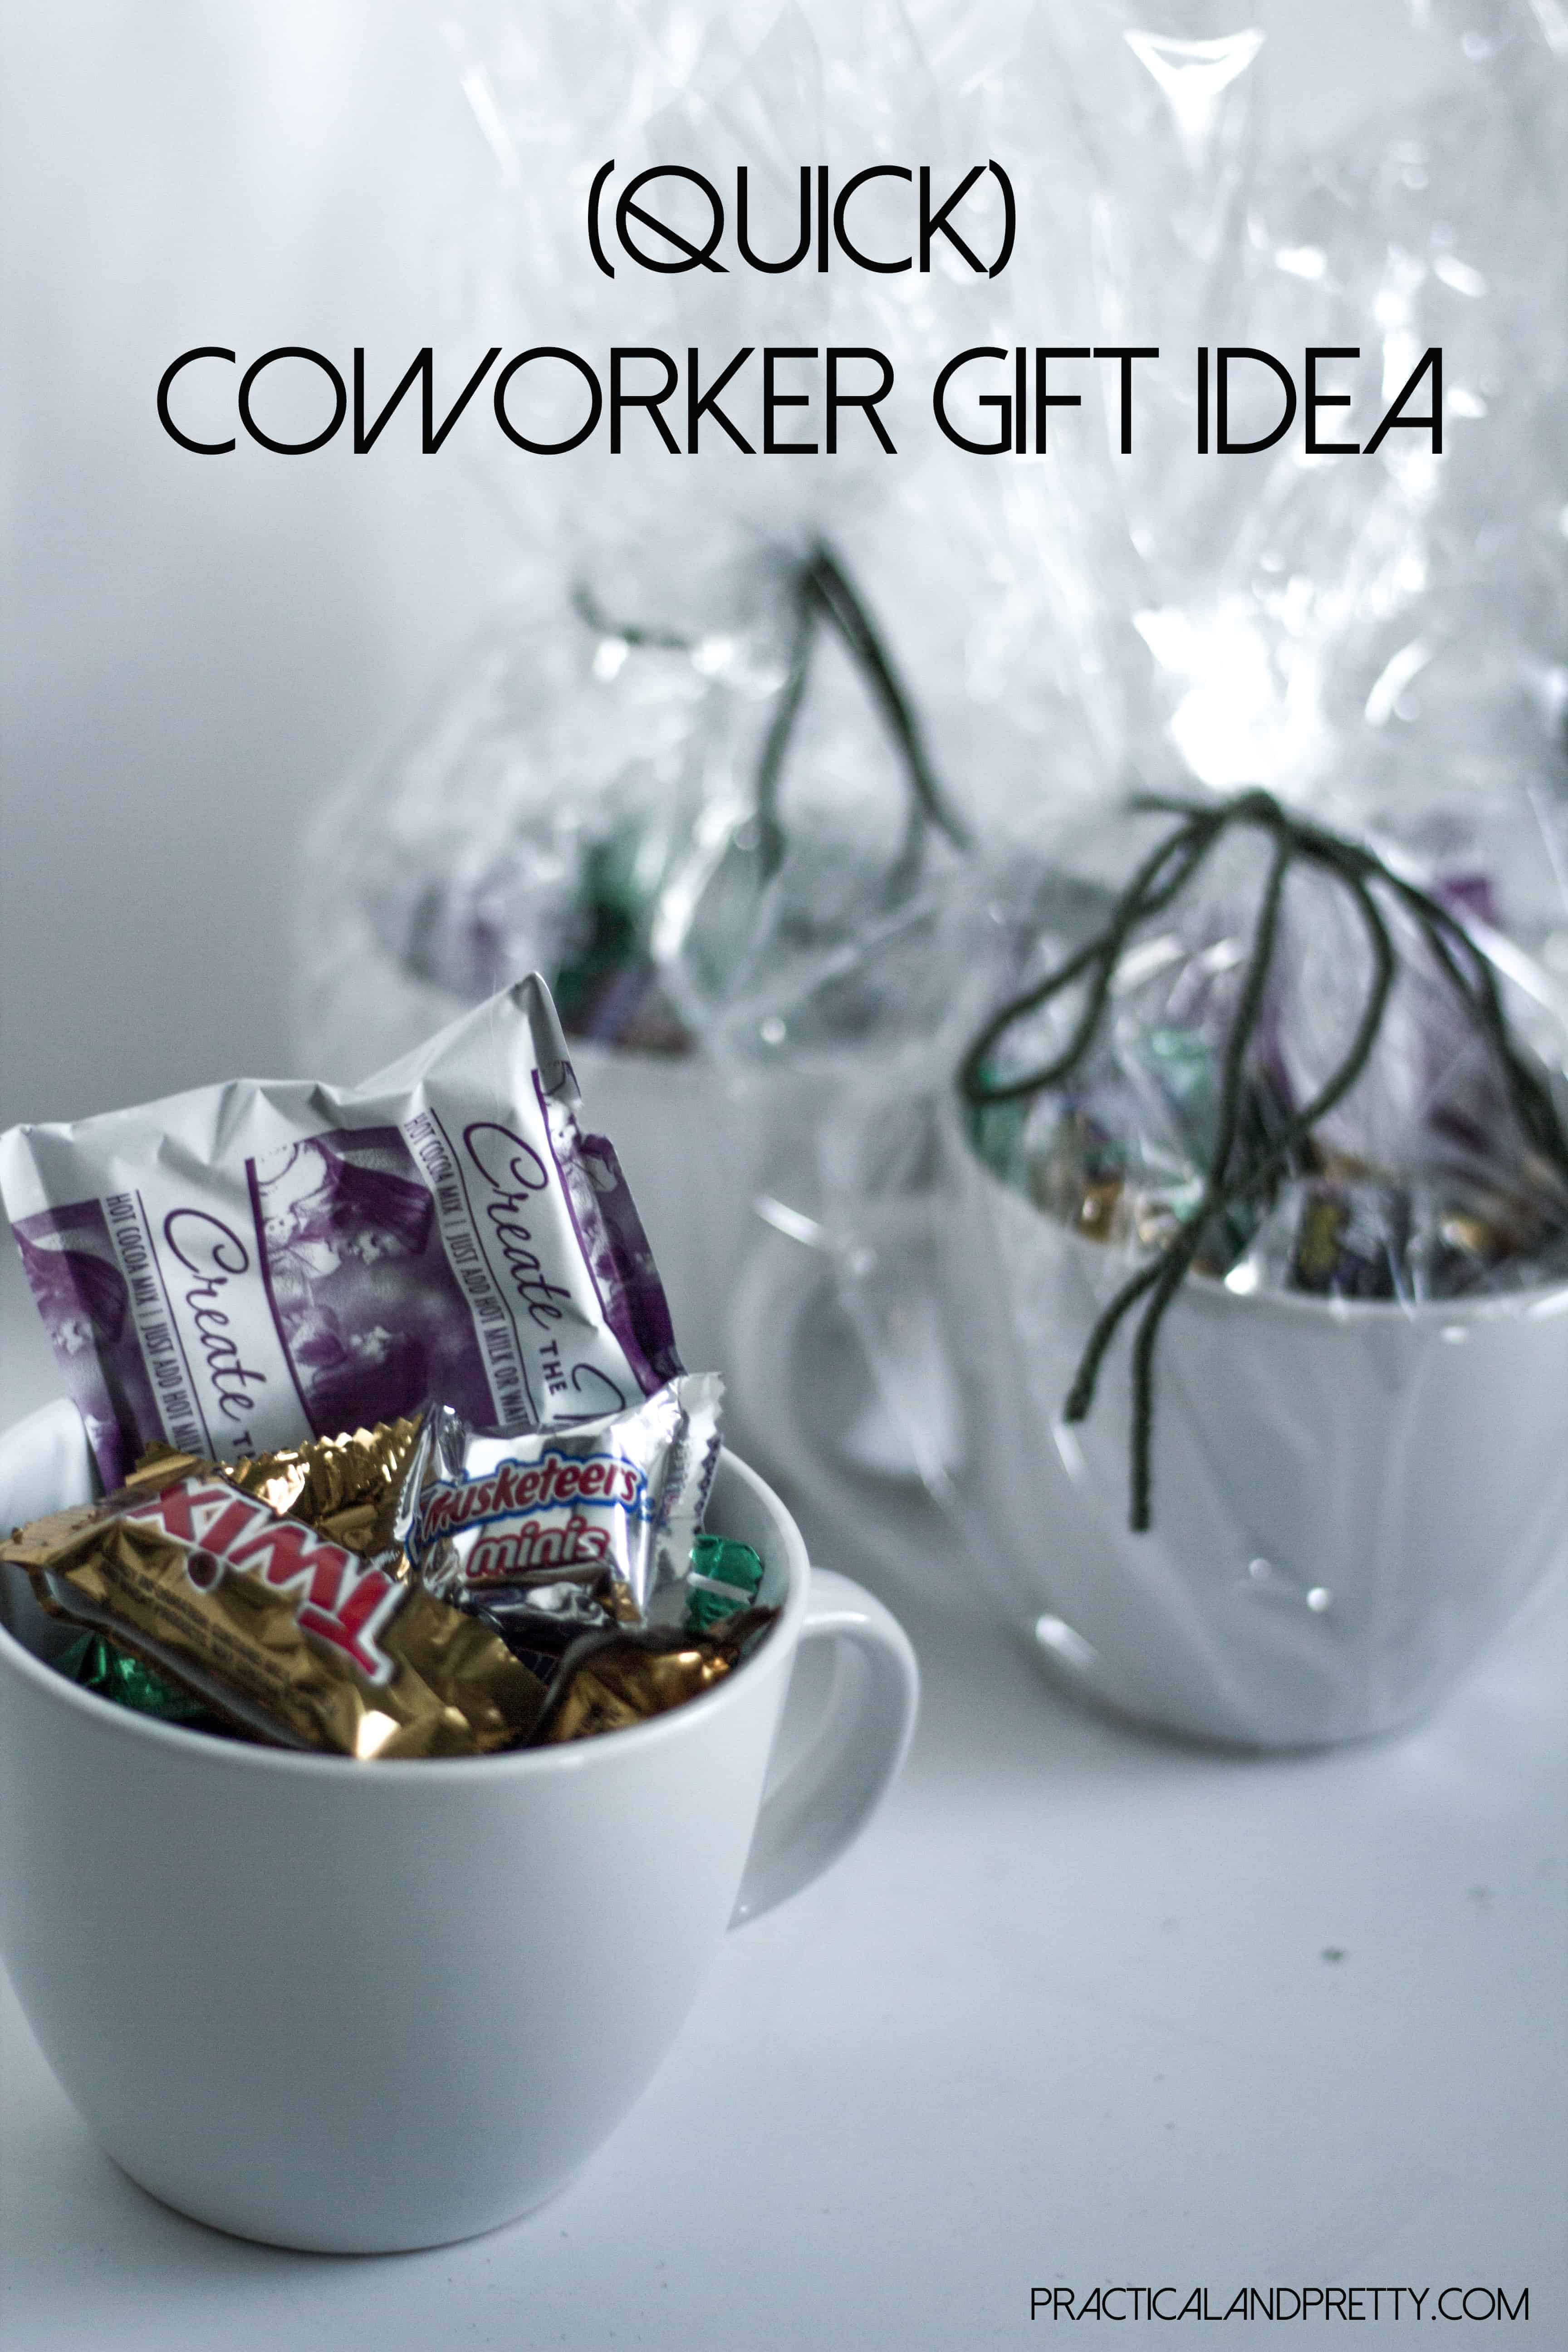 Quick Coworker Gift Idea (for Less than $4)